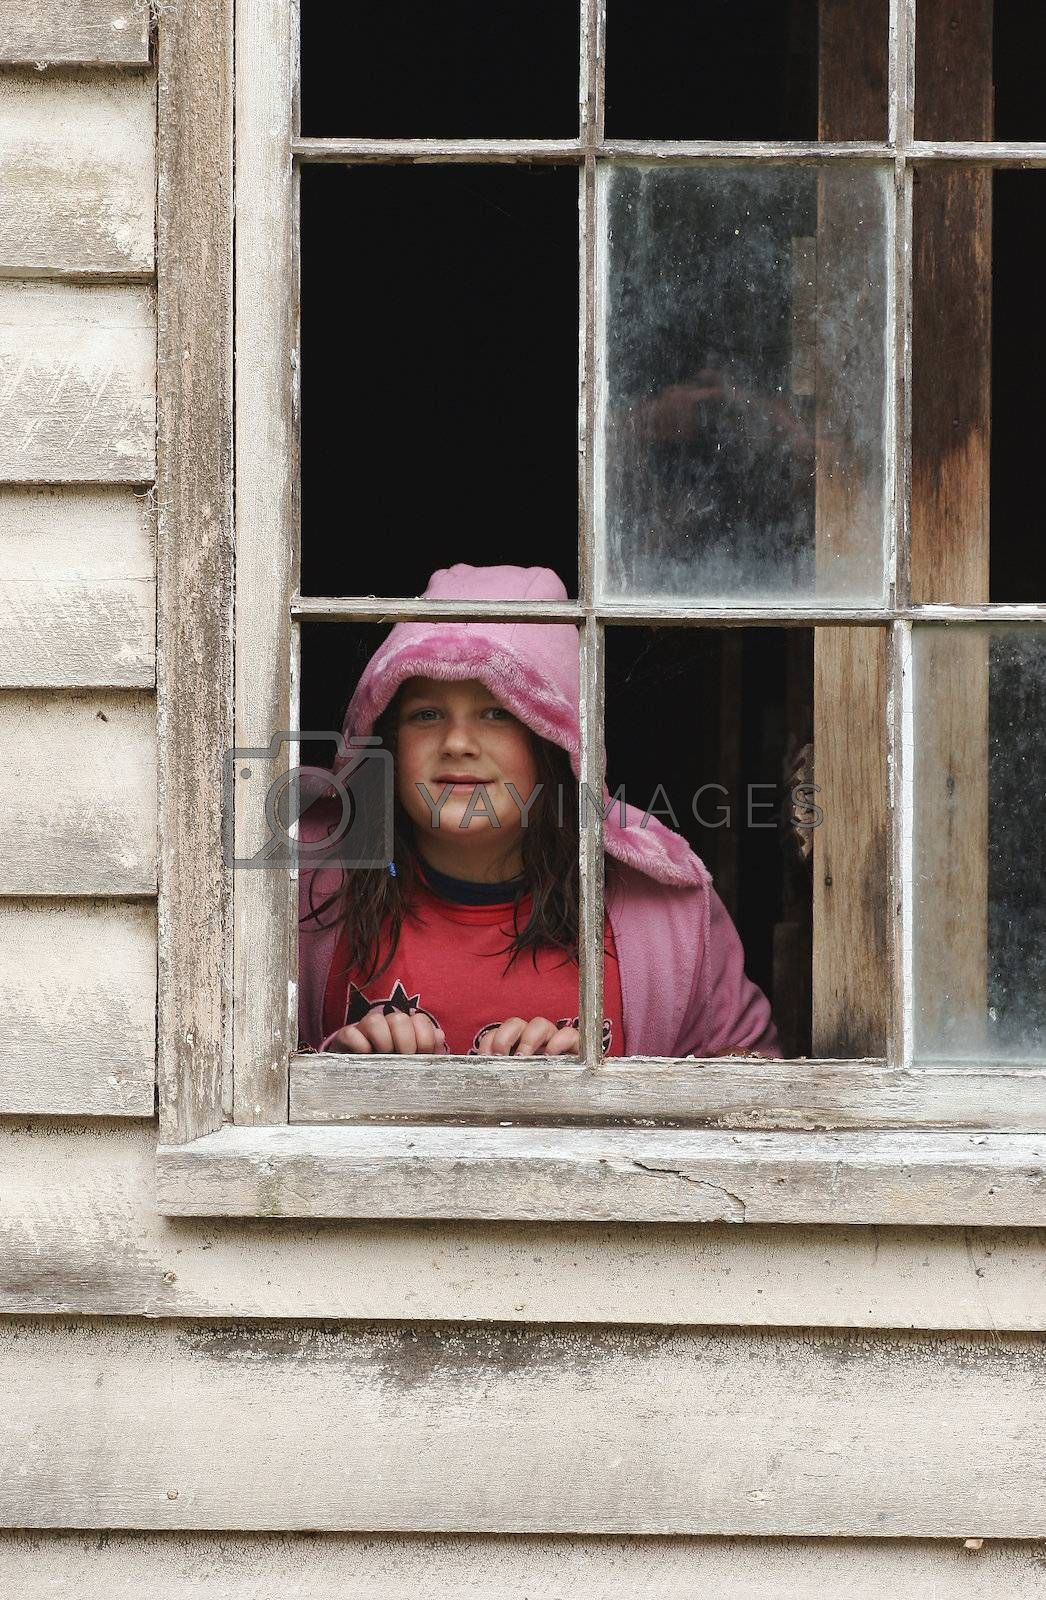 A girl looks out an old shed window